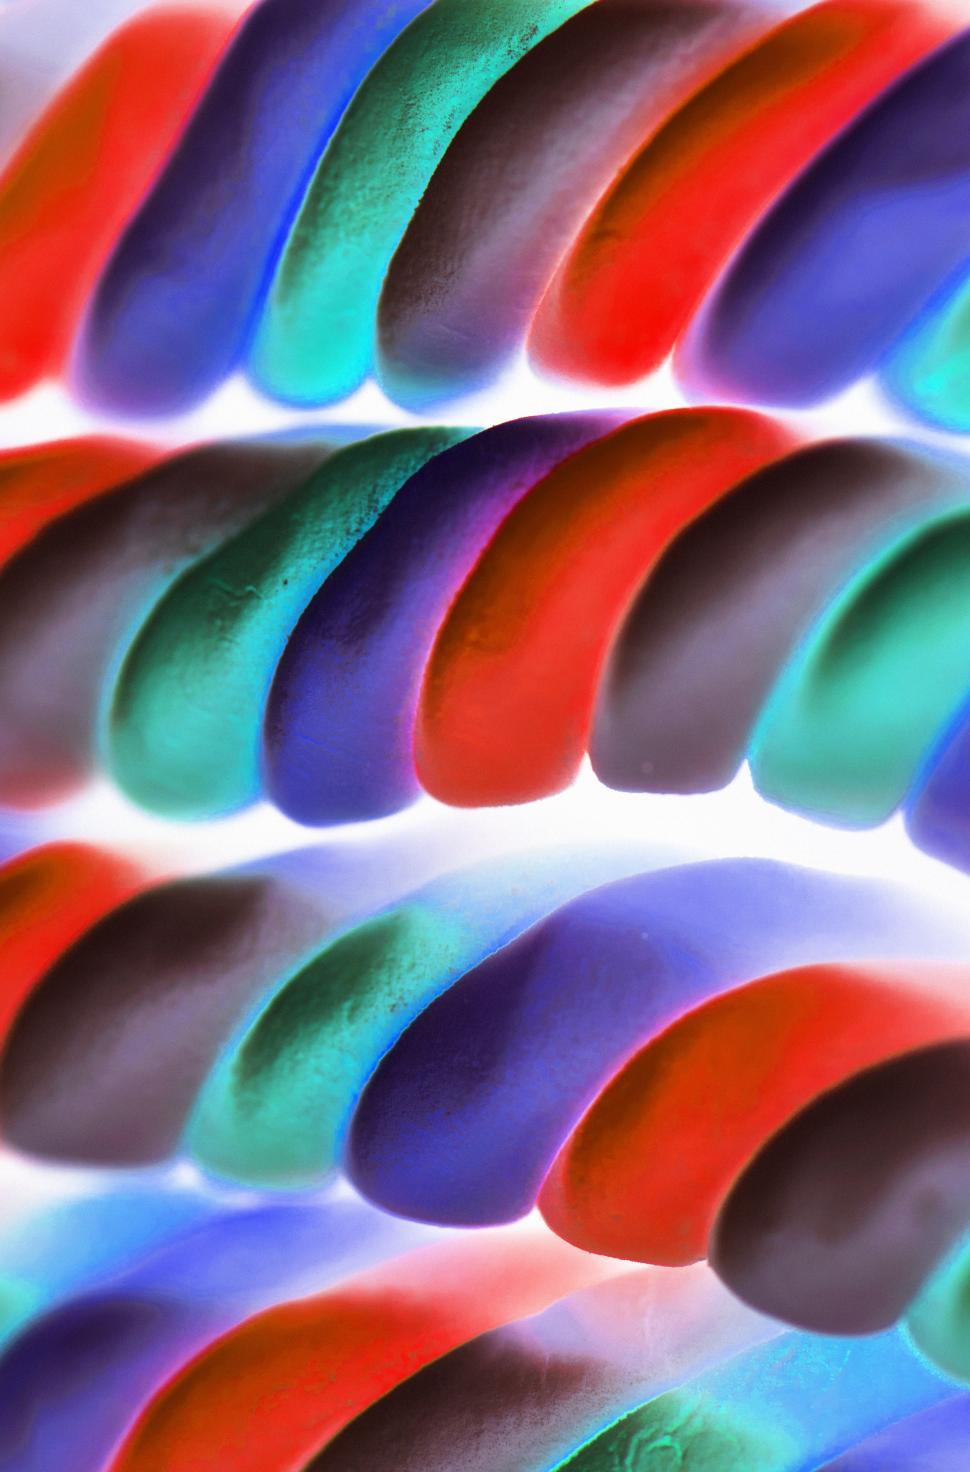 Download Free Stock HD Photo of Inverted color image of marshmallow twists Online